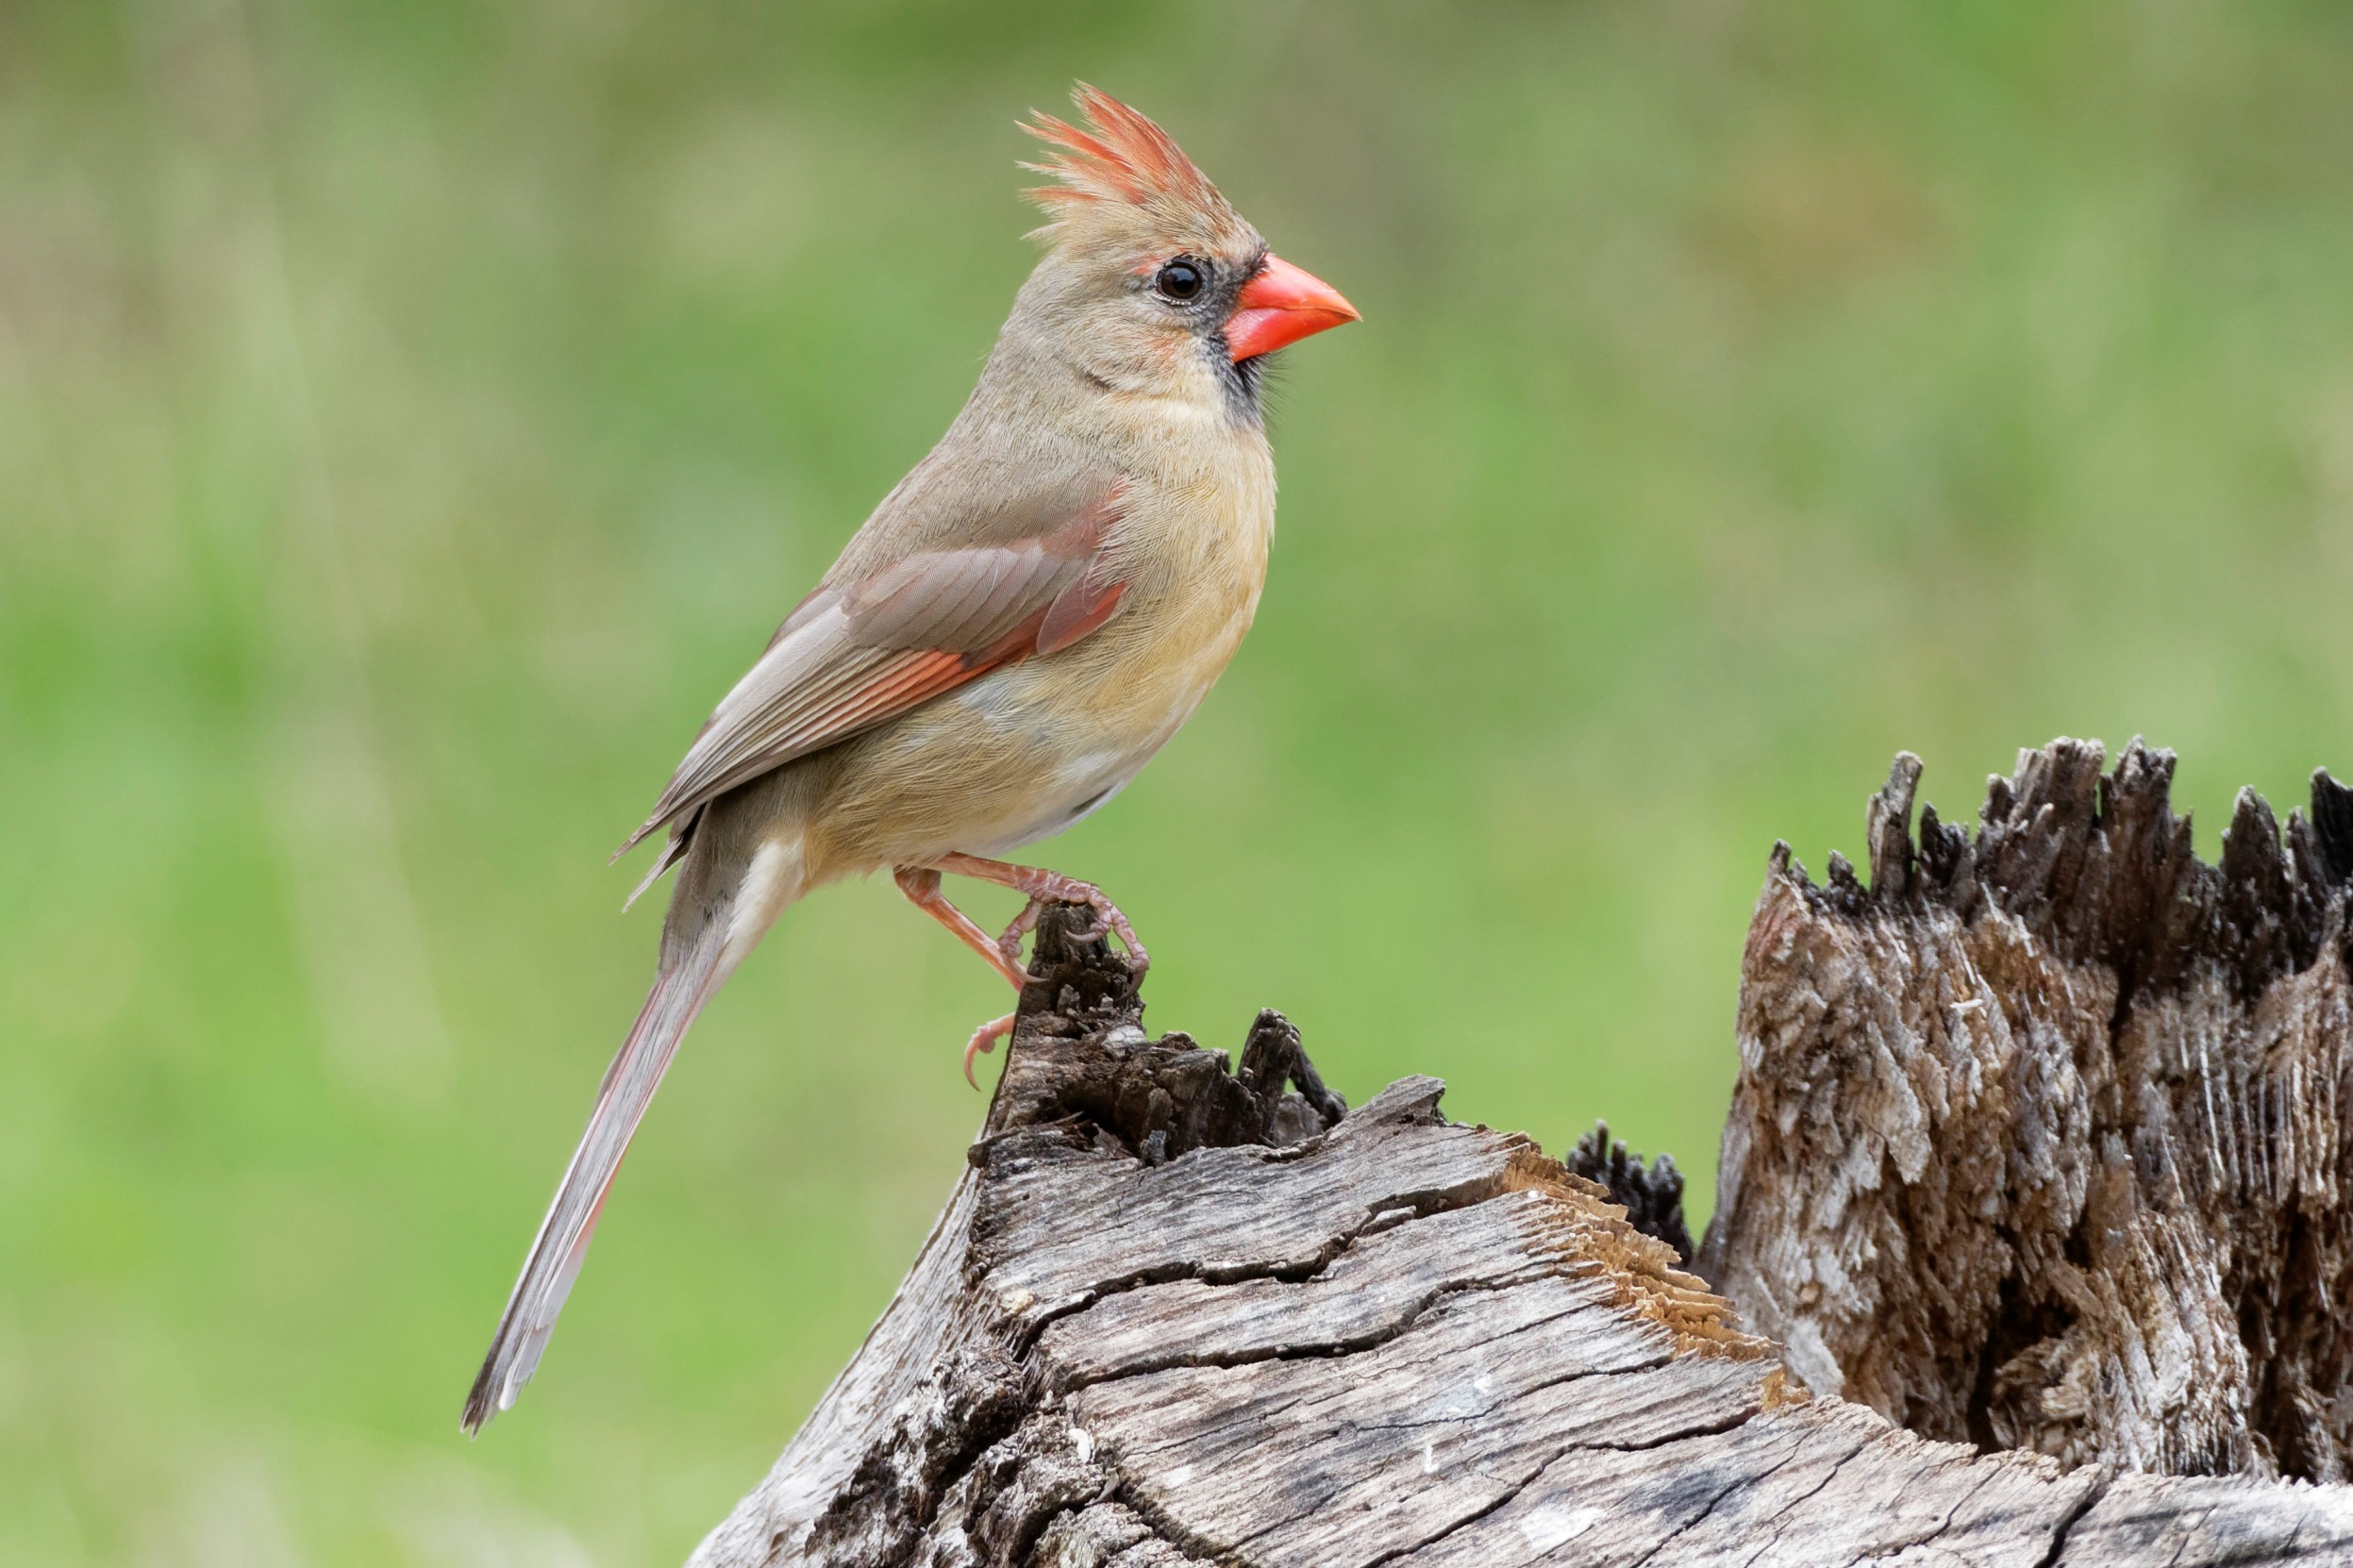 Species: Northern Cardinal Photo Credit: Dina Perry Date: March 2018 Location: Guadalupe River SP